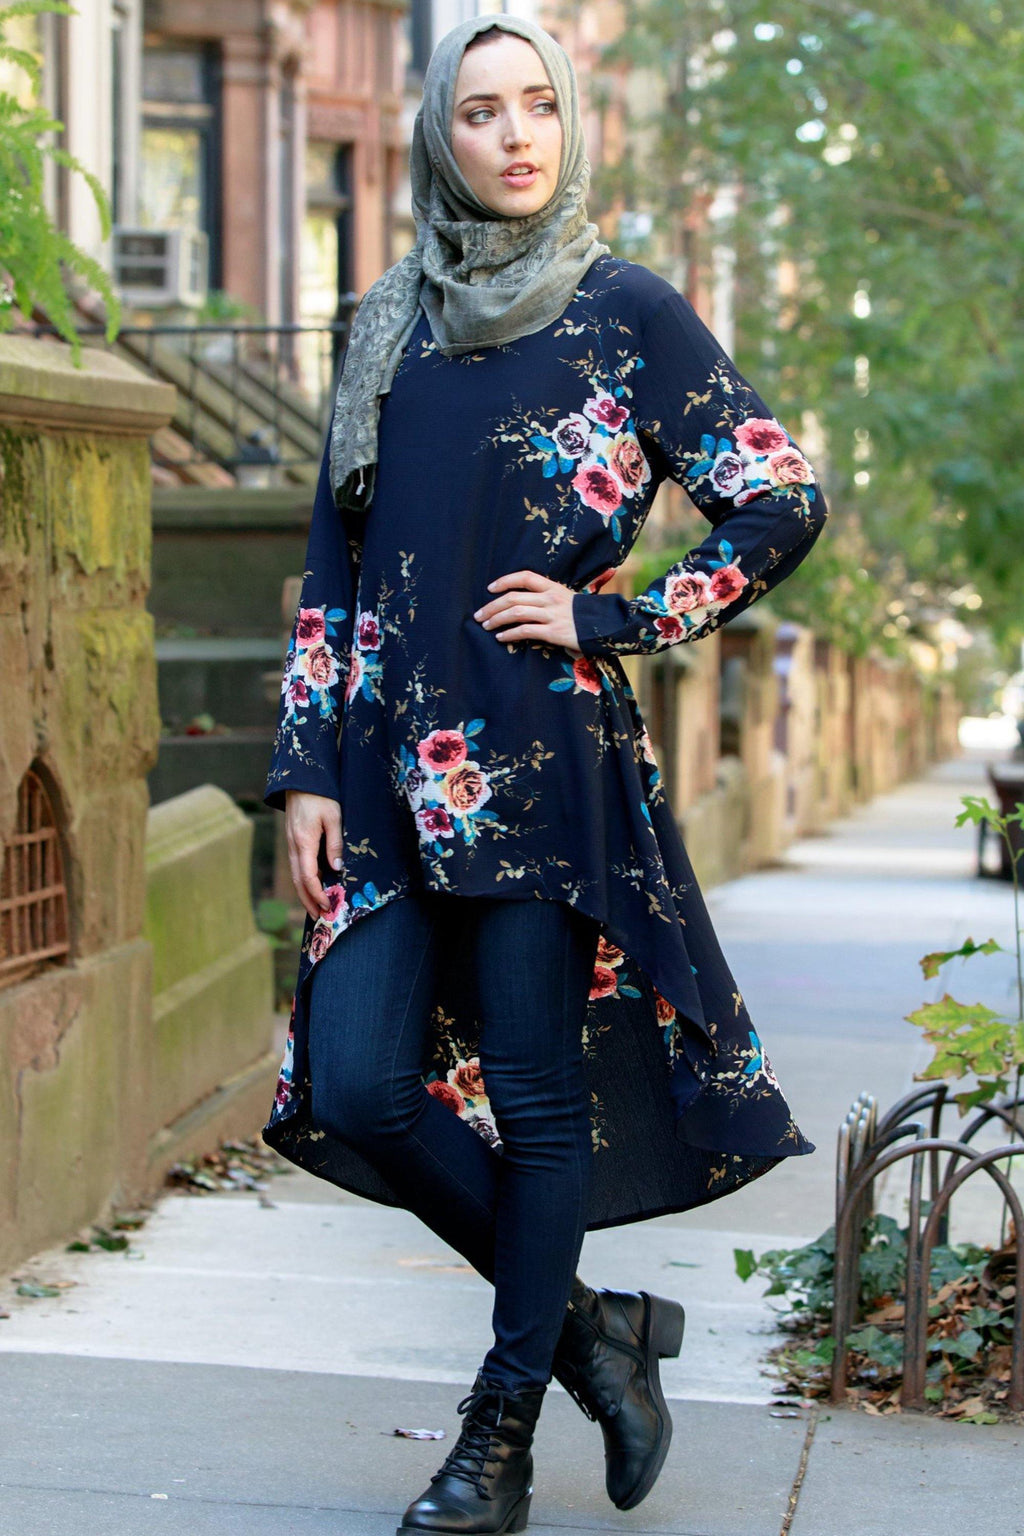 Navy Hi-Lo Floral Tunic Top - Abaya, Hijabs, Jilbabs, on sale now at UrbanModesty.com